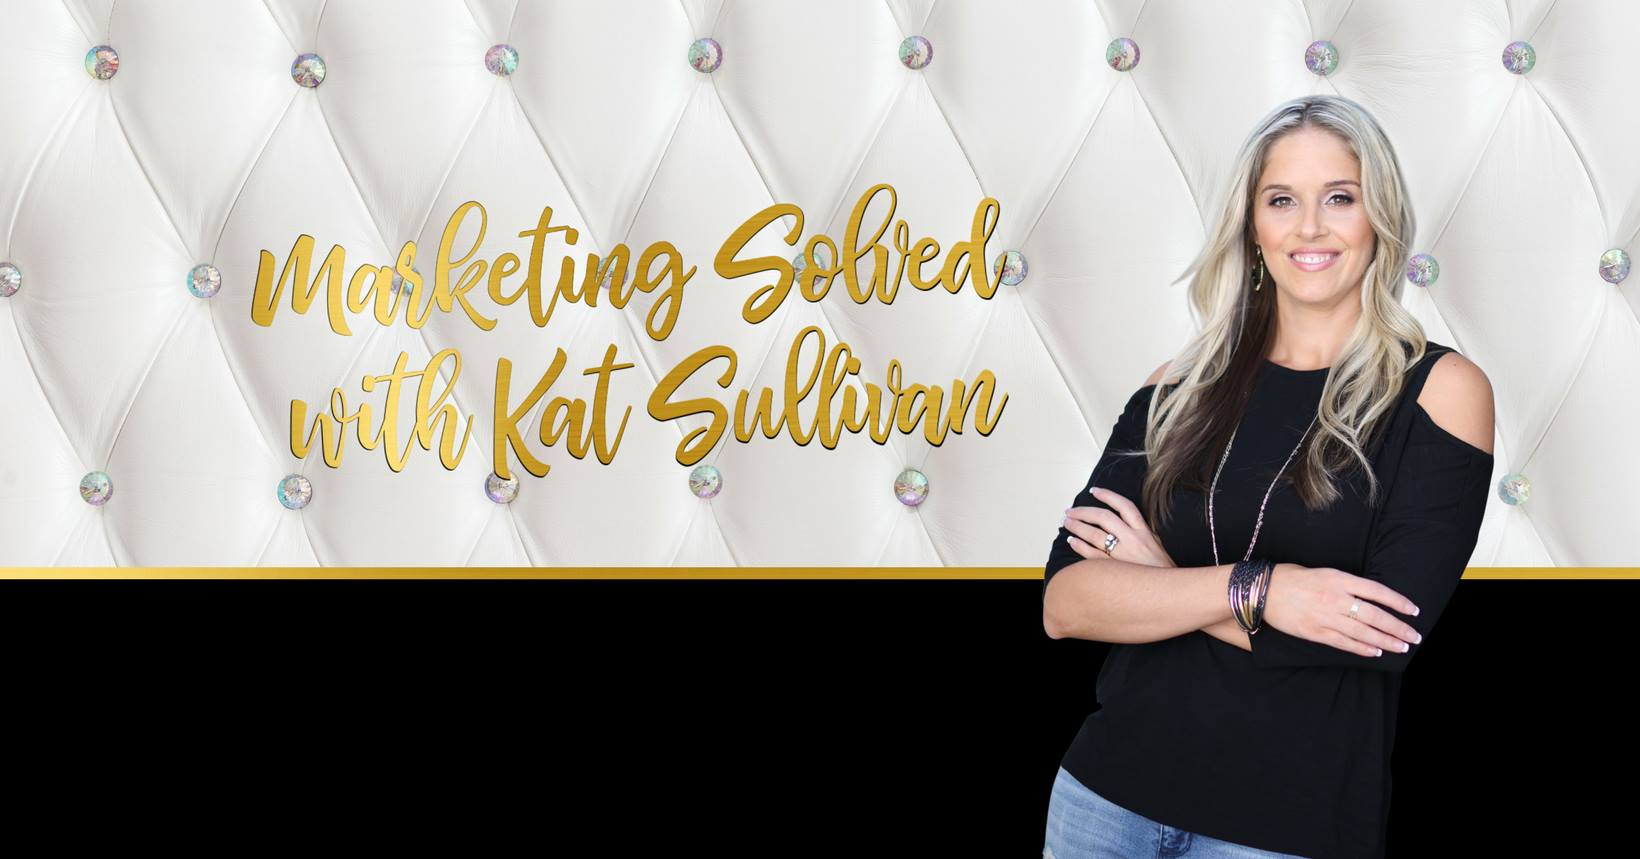 Kat Sullivan Facebook Group